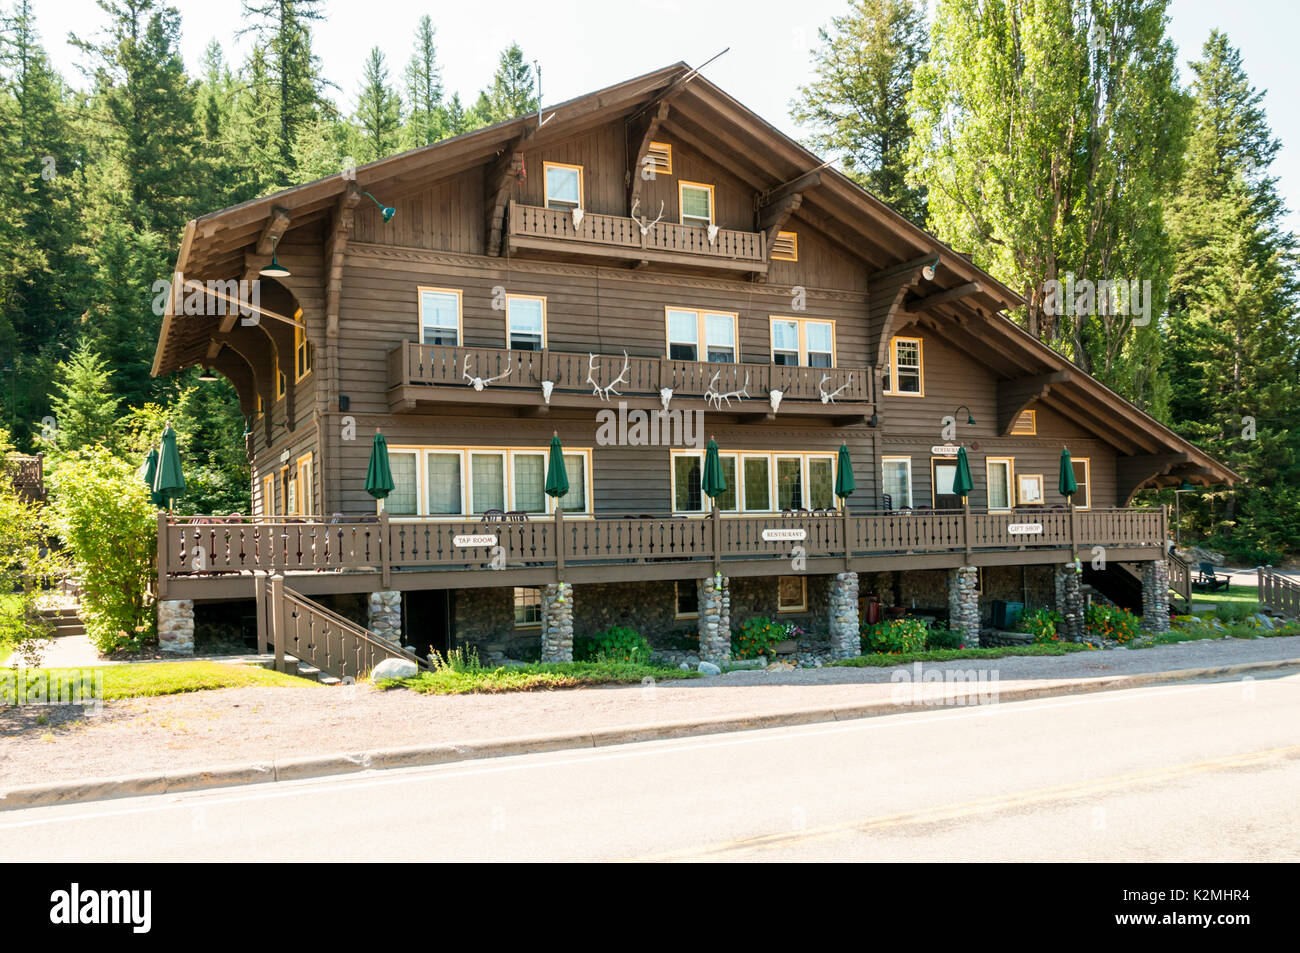 Belton Hotel in West Glacieer. A historic railroad hotel in Glacier National Park, Montana, USA - Stock Image